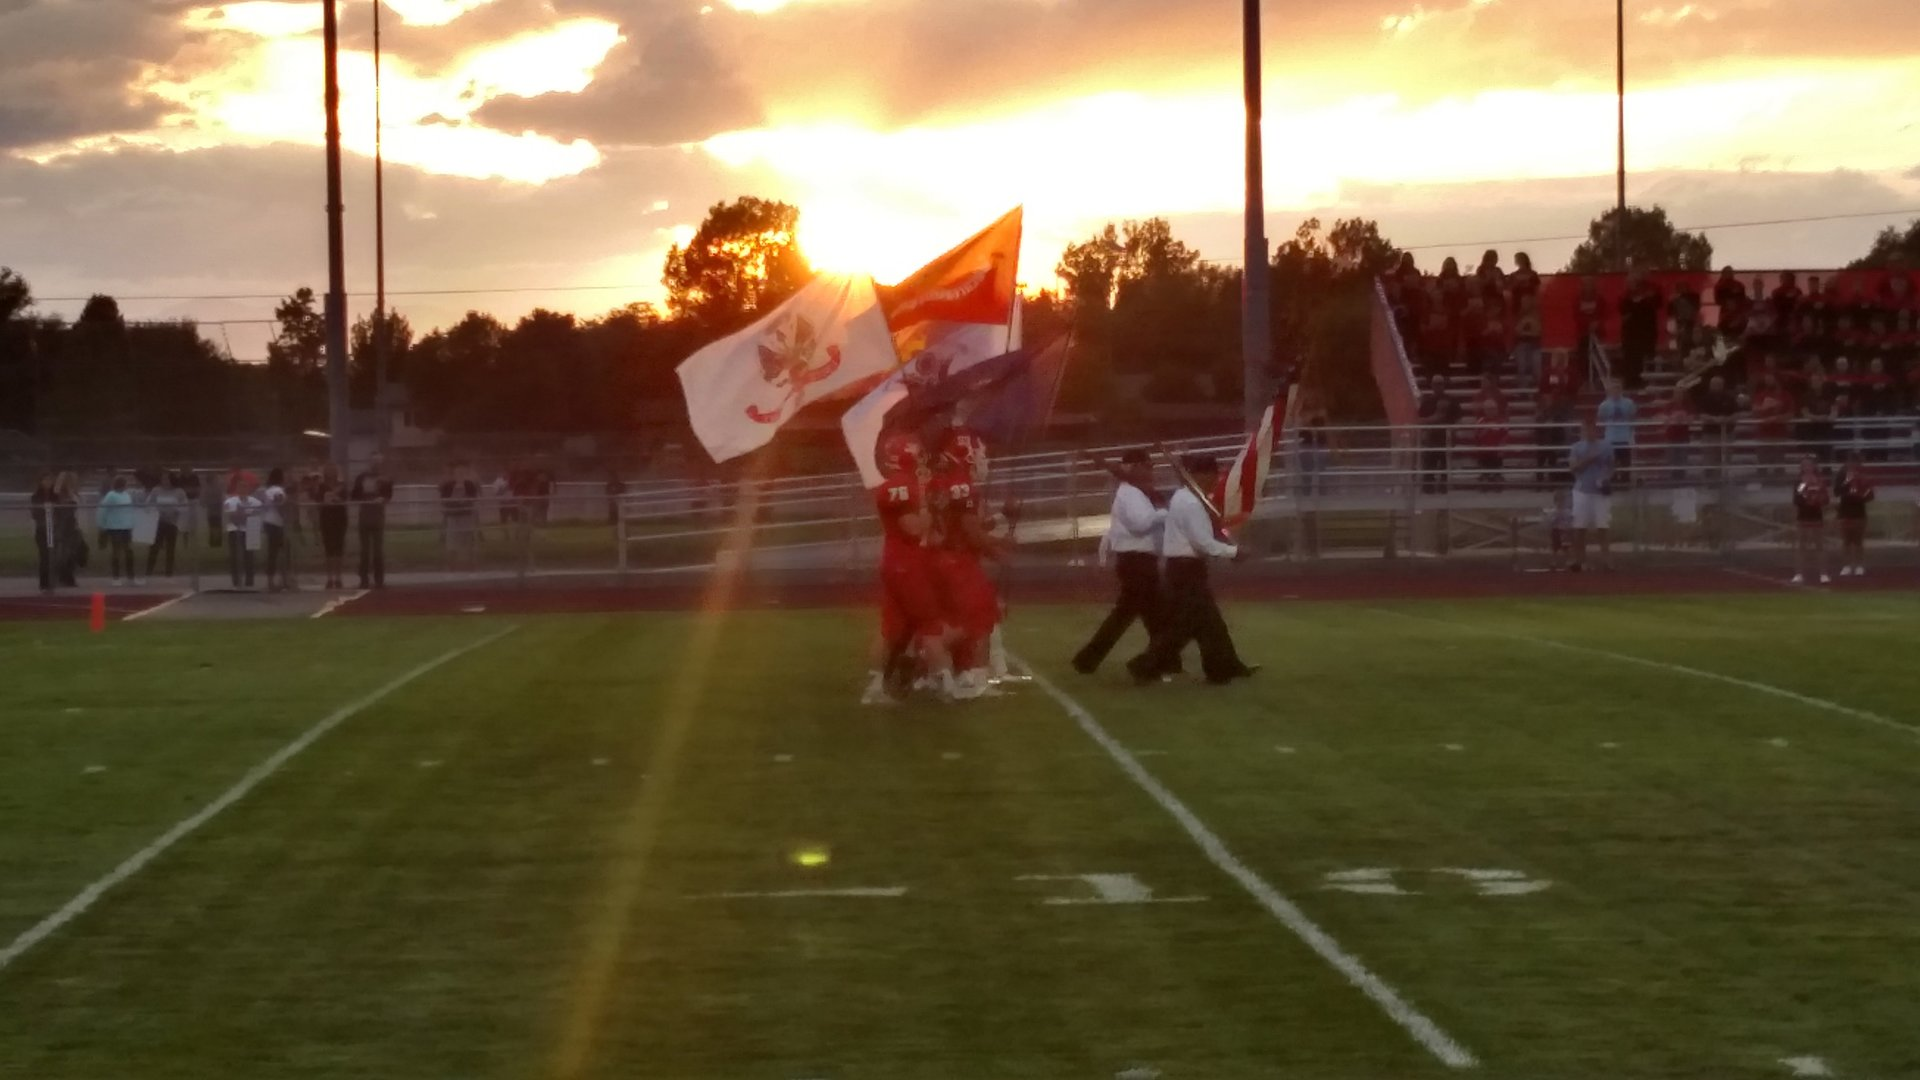 Friday Night lights and flags